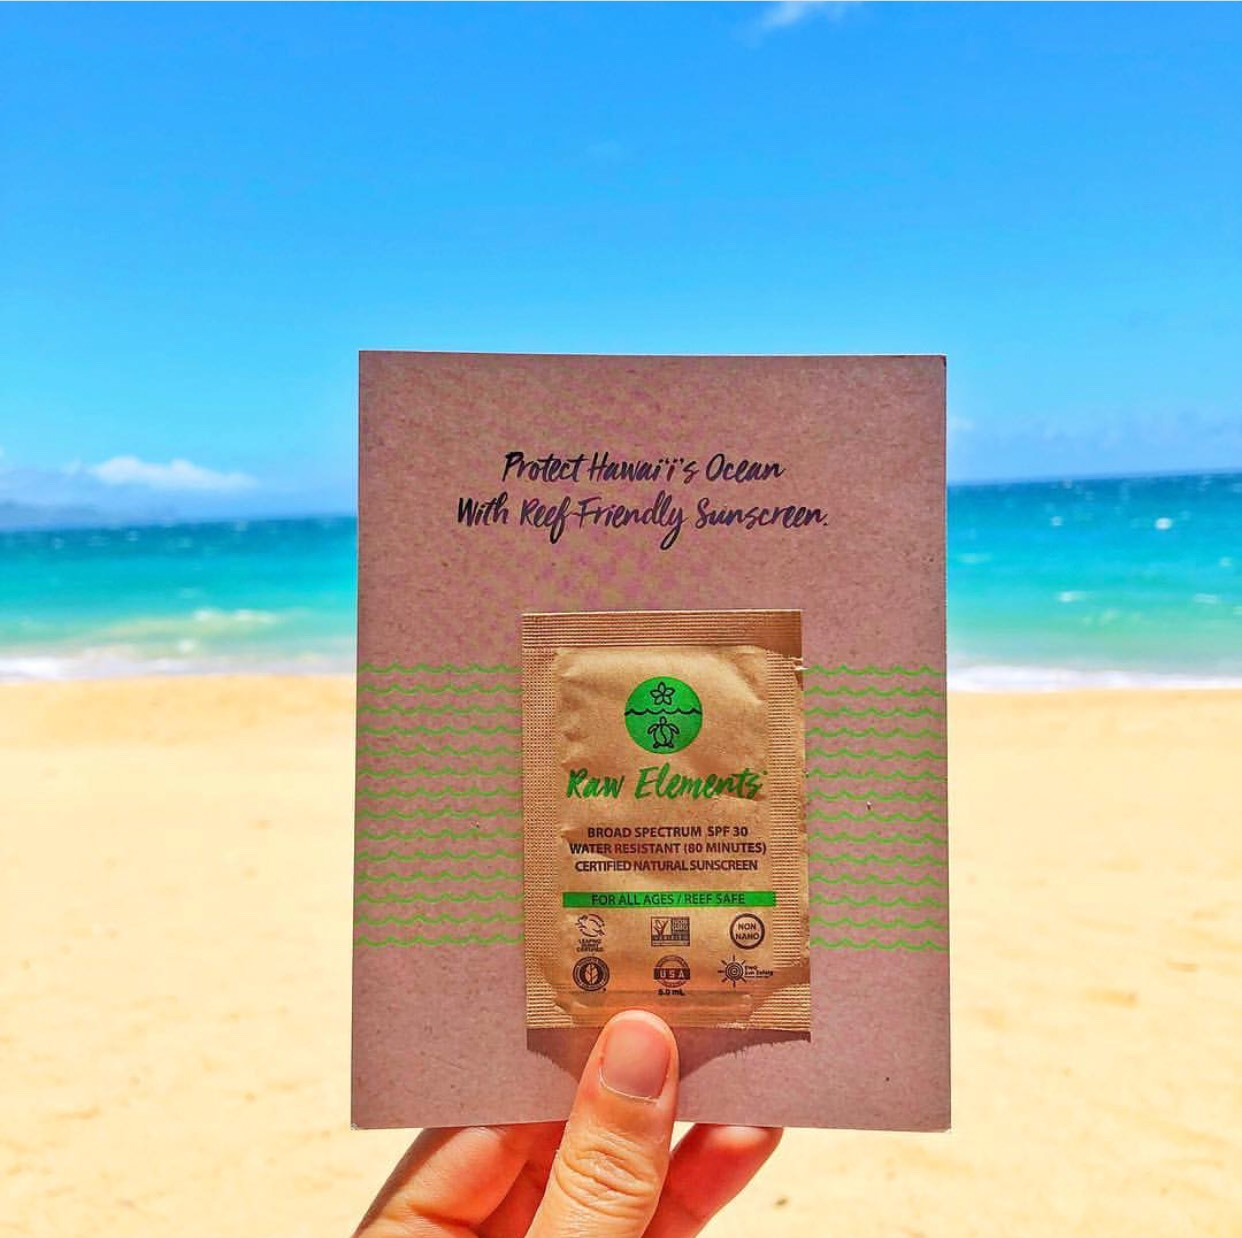 Mahalo, Hawaiian Airlines, for spreading the awareness and offering reef safe sunscreen and samples on your flights!